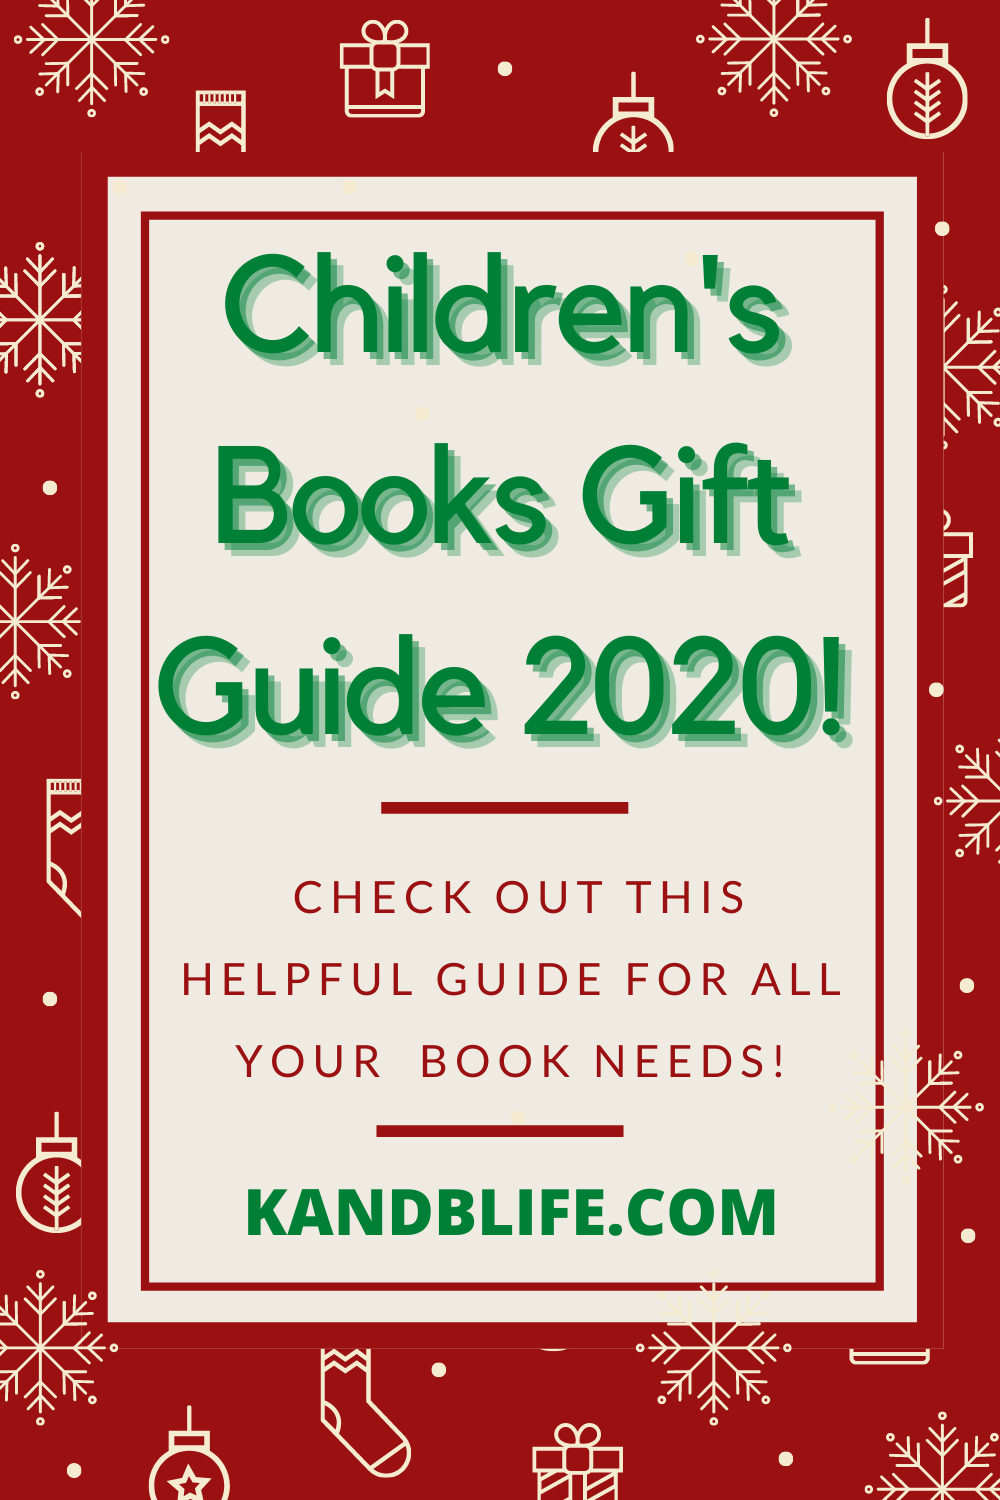 Children's Books Gift Guide 2020 Cover. Red with white sleds and snowflakes.